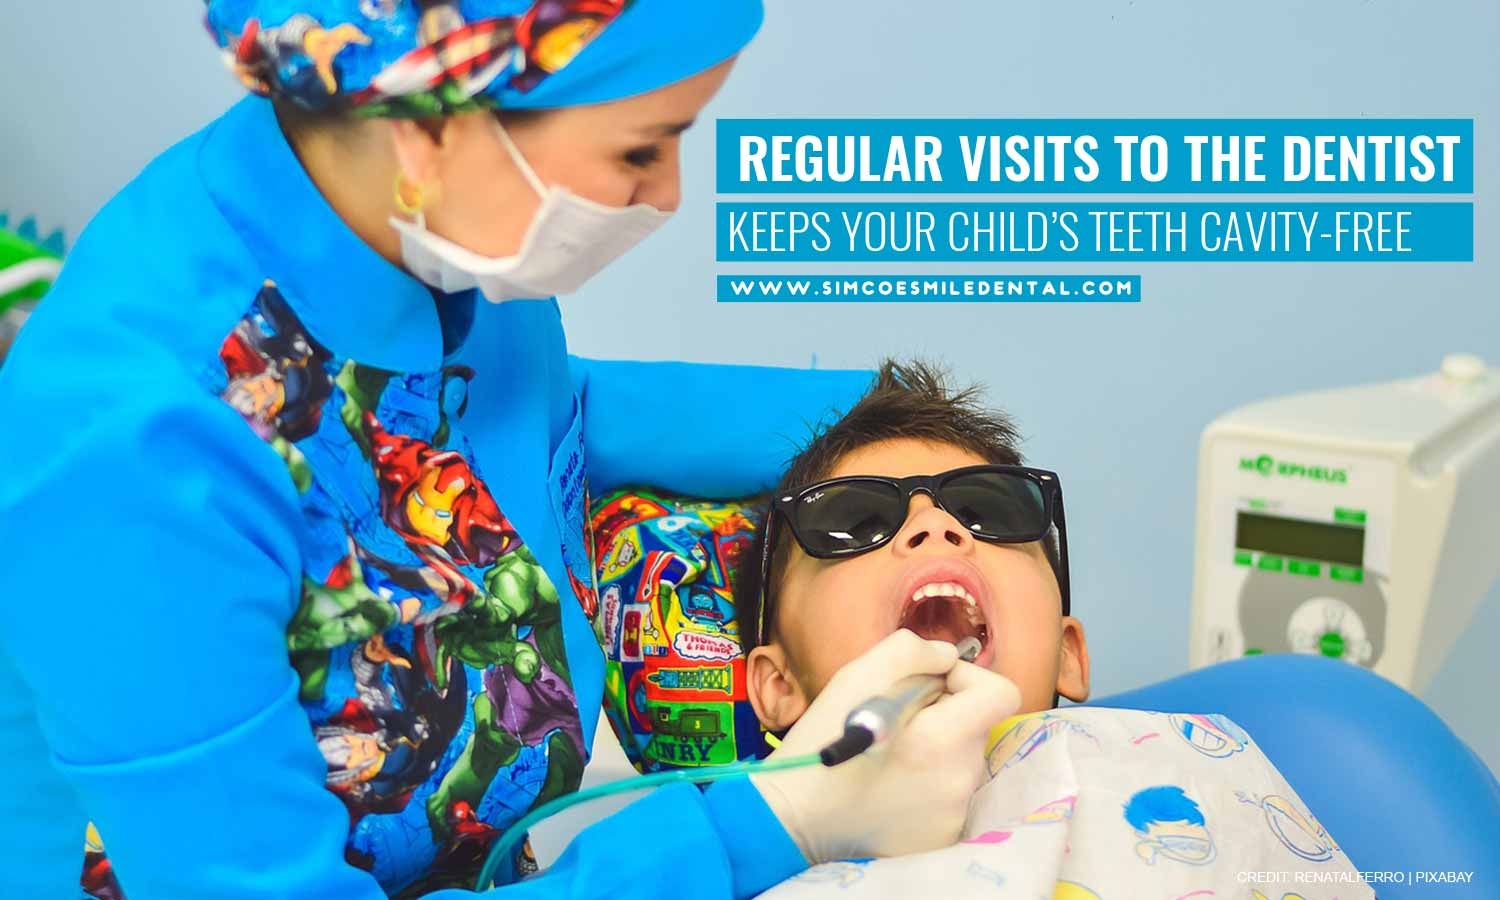 Regular-visits-to-the-dentist-keeps-your-childs-teeth-cavity-free How to Get Your Kid Excited for a Dental Visit